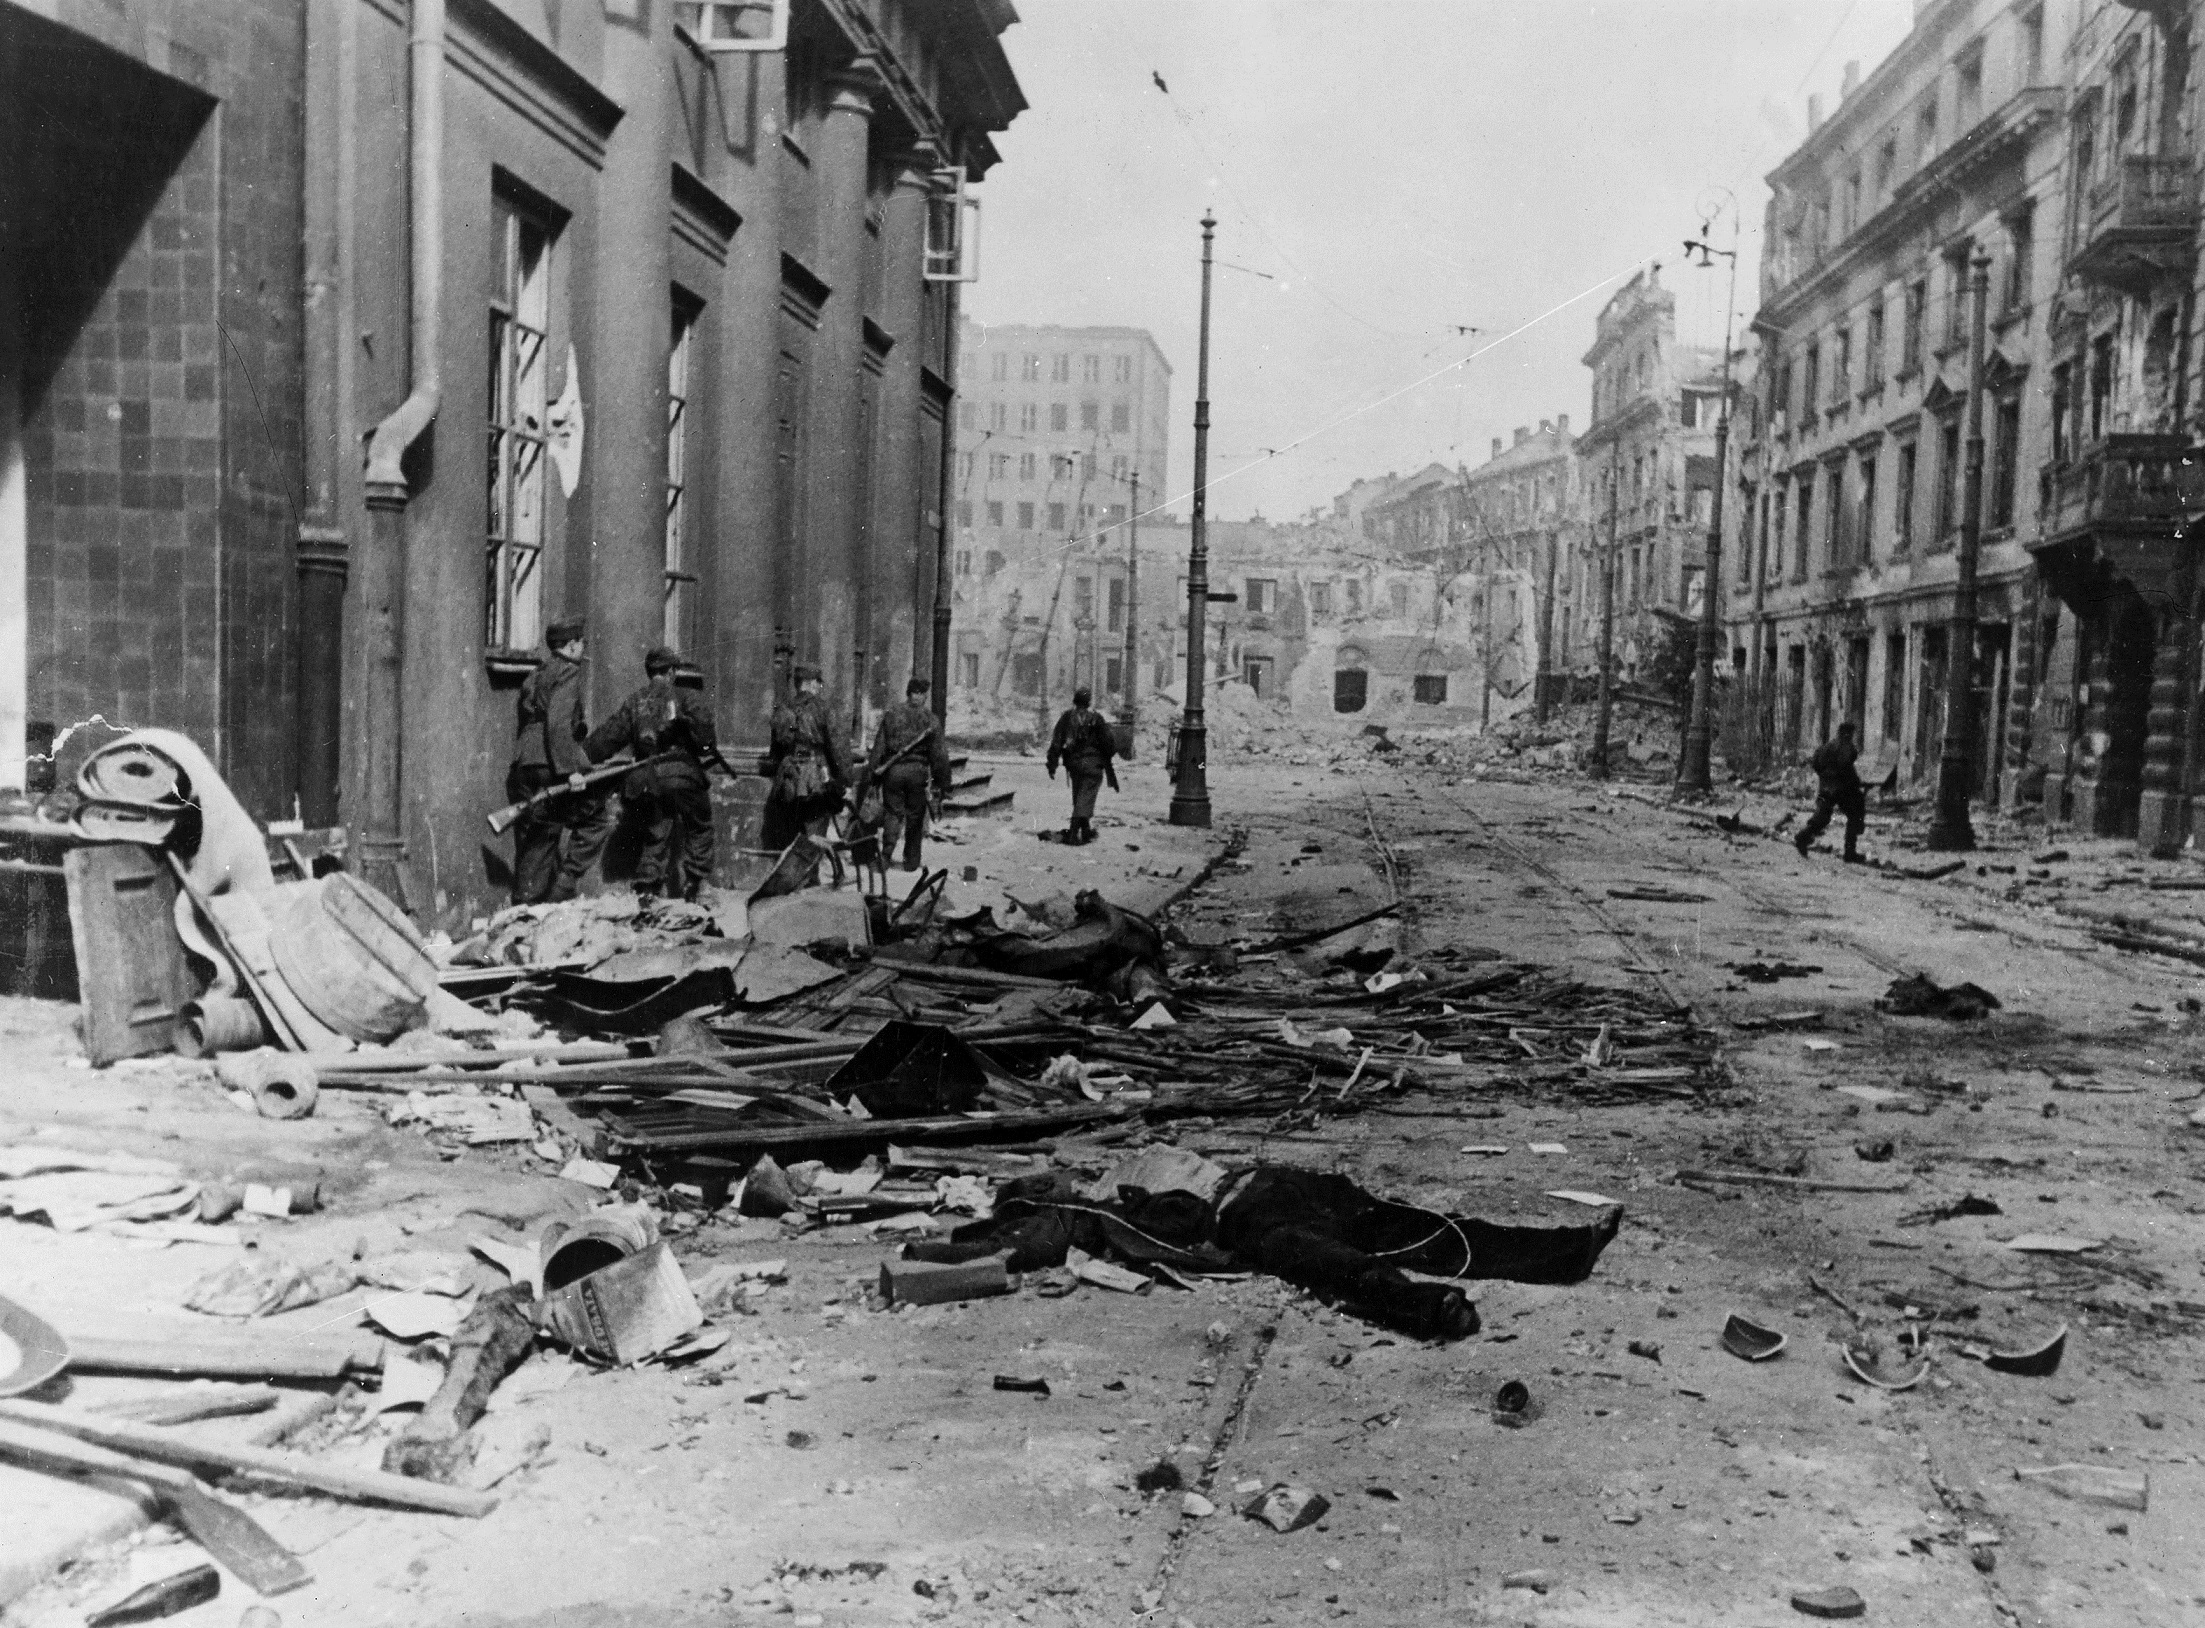 1944 warsaw uprising essay Warsaw uprising - ww2 timeline (august 1st - october 2nd, 1944) with germany seemingly on the retreat, polish authorities attempted to take back their capital city before the soviet army could lay claim upon it.